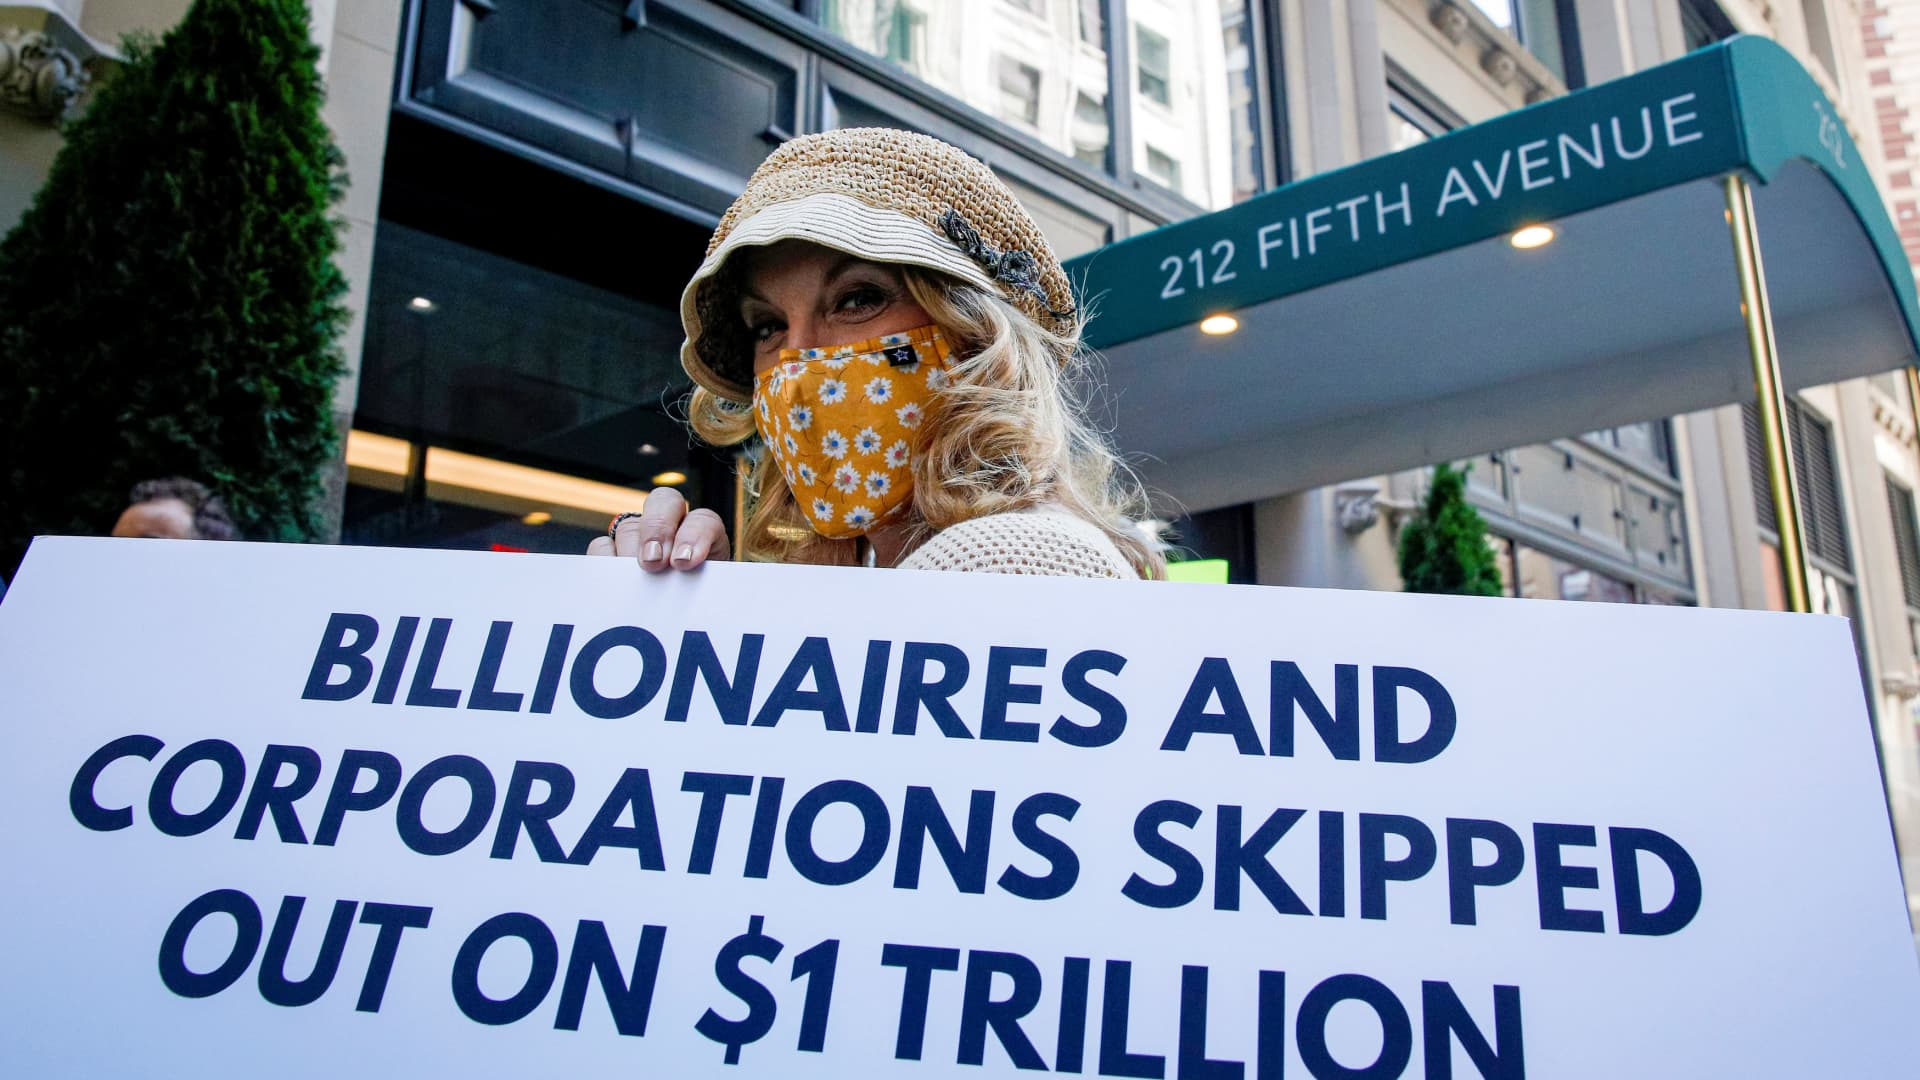 Members of the Patriotic Millionaires hold a federal tax filing day protest outside the apartment of Amazon founder Jeff Bezos, to demand he pay his fair share of taxes, in New York City, May 17, 2021.